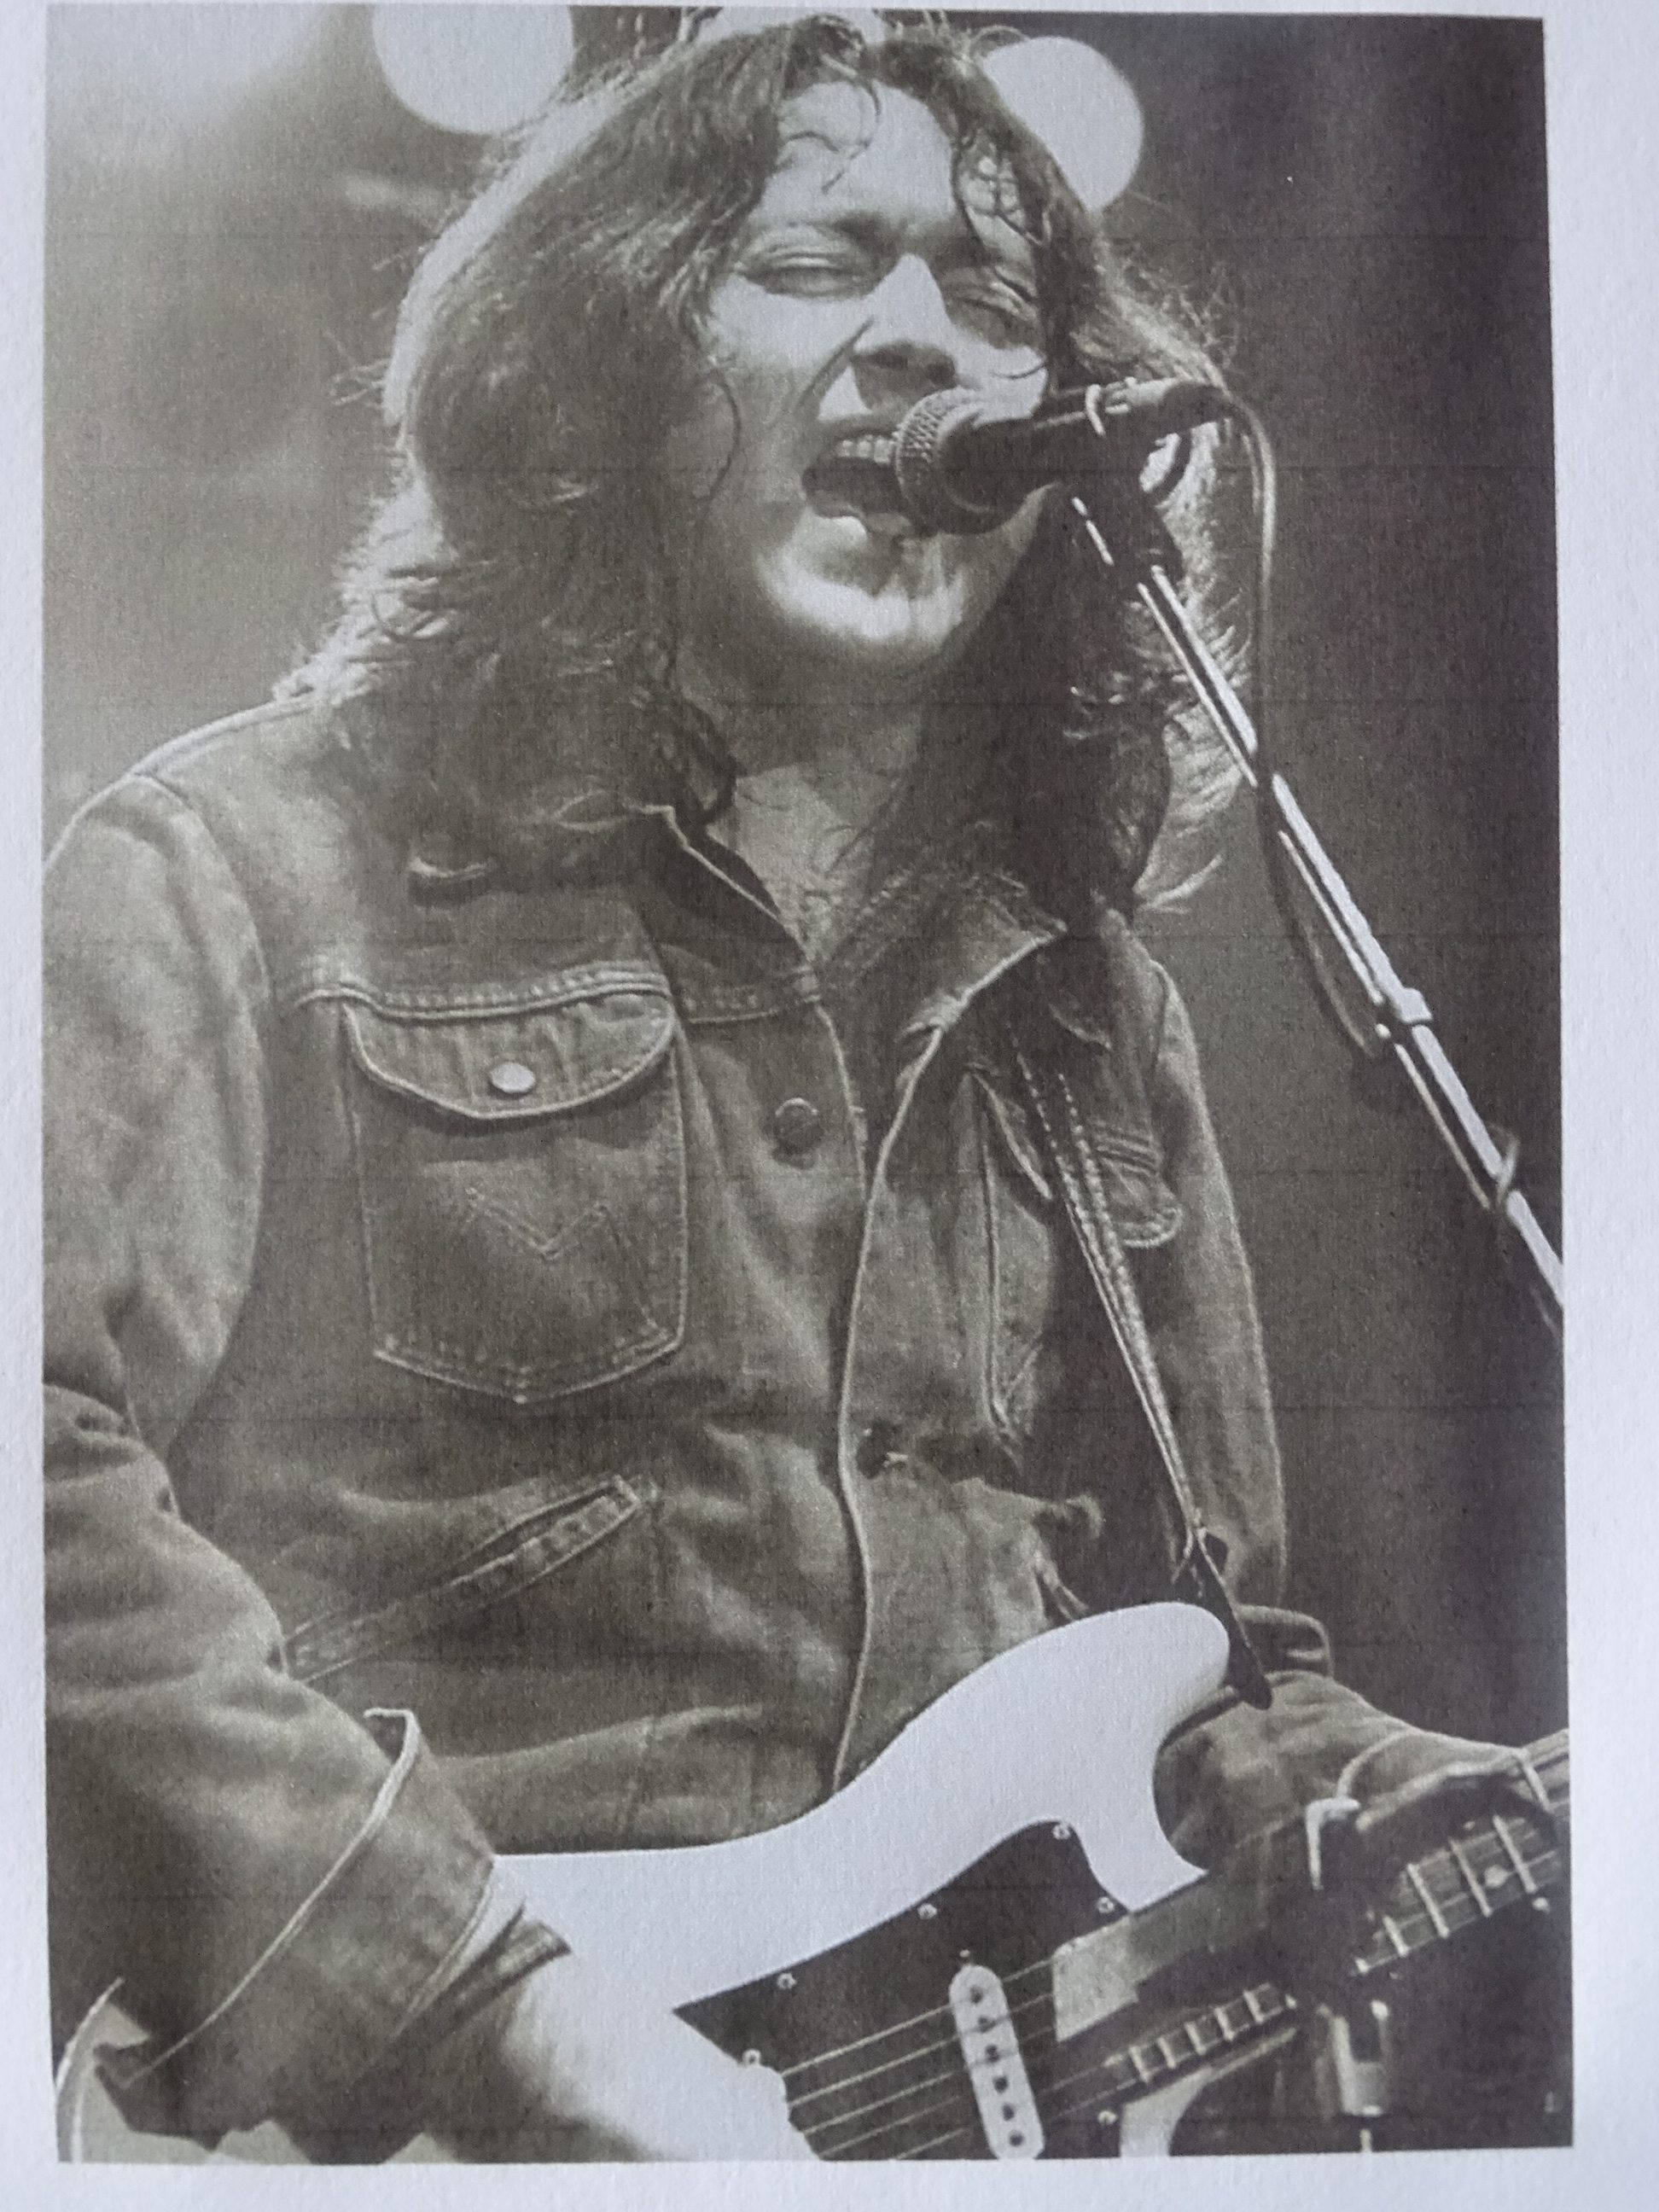 Rory Gallagher at Machester Apollo, 1982  (source: Cork City Library)